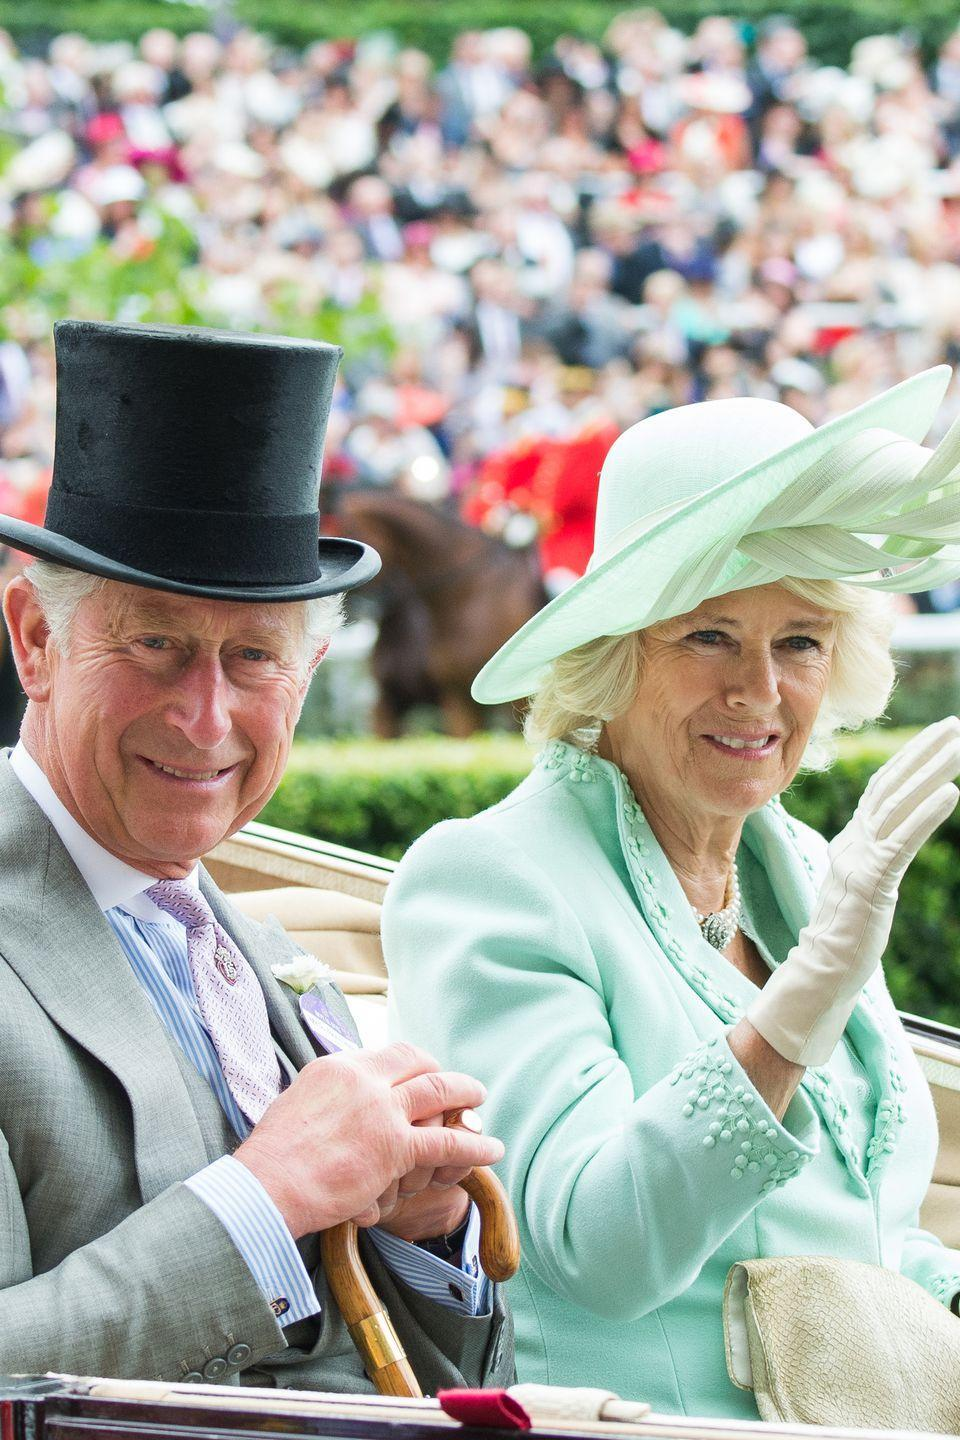 <p>Arriving in a carriage to the first day of the Royal Ascot at Ascot Racecourse. </p>